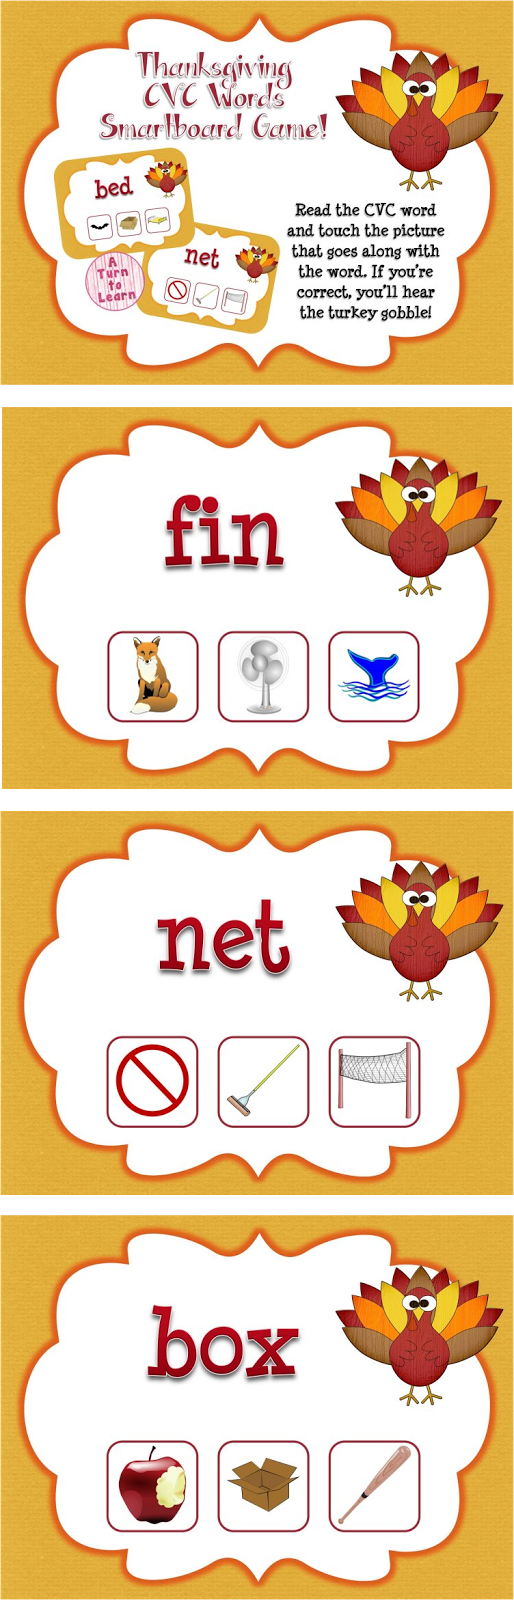 This Thanksgiving themed smartboard/promethean board game is the perfect way to celebrate the holiday! Just have students read the CVC word at the top of the page and touch the correct picture. If they're right, they'll hear a turkey gobble!